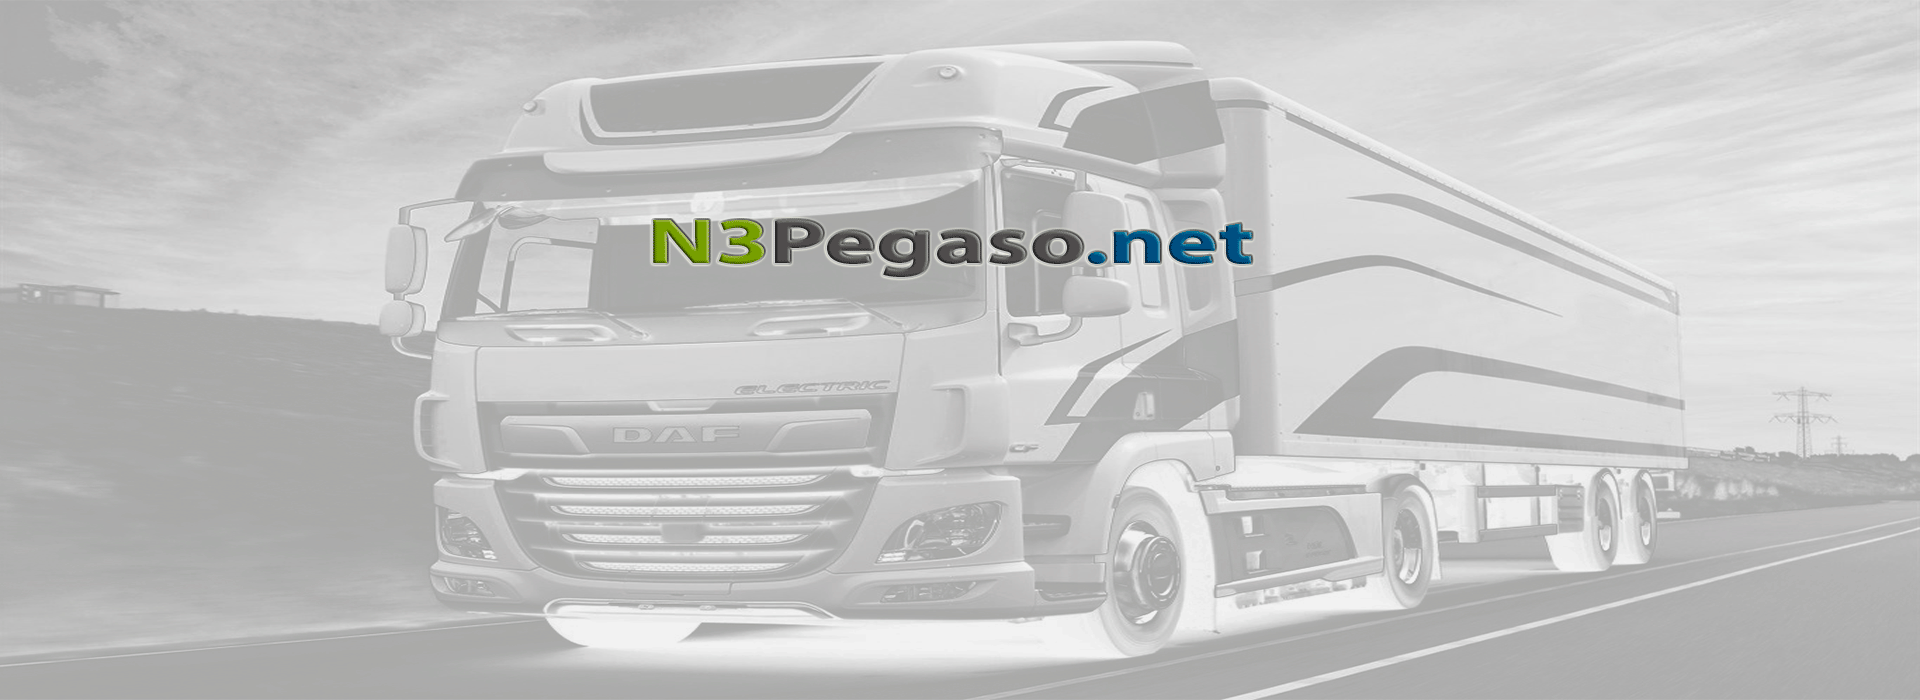 BackN3Pegaso1920x700